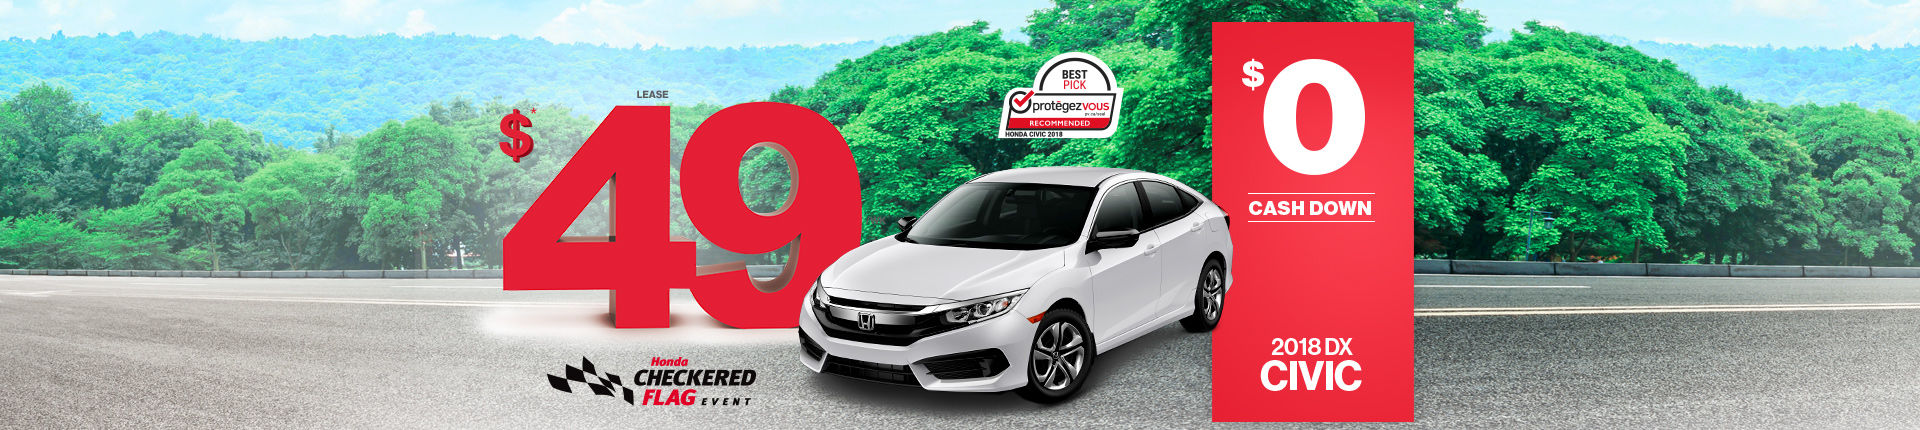 Lease the 2018 Honda Civic in Montreal